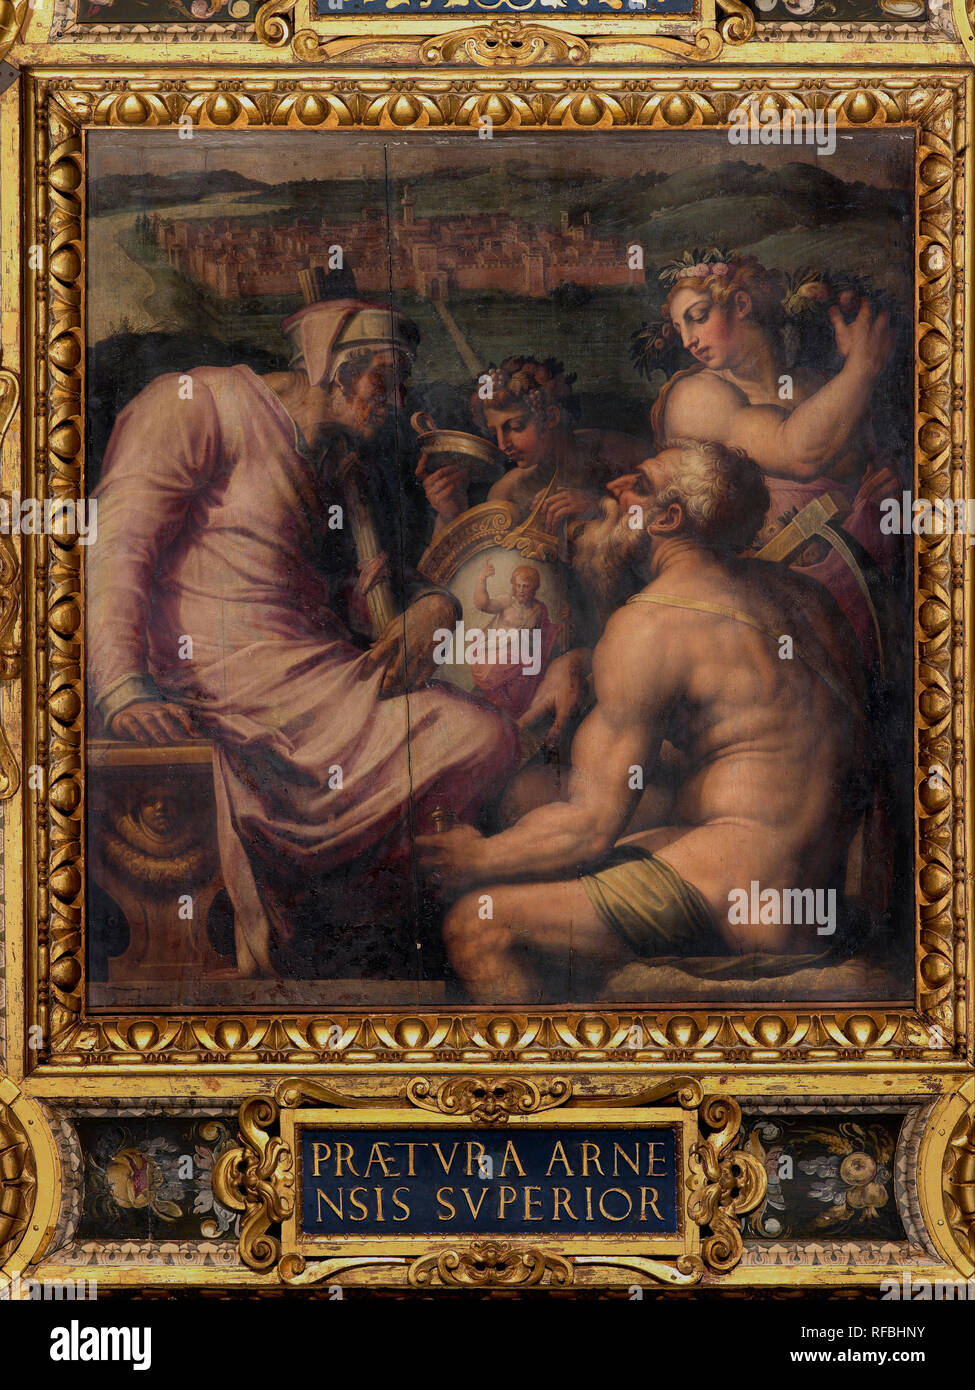 Allegory of San Giovanni Valdarno. Date/Period: 1563 - 1565. Oil painting on wood. Height: 250 mm (9.84 in); Width: 250 mm (9.84 in). Author: Giorgio Vasari. VASARI, GIORGIO. Stock Photo